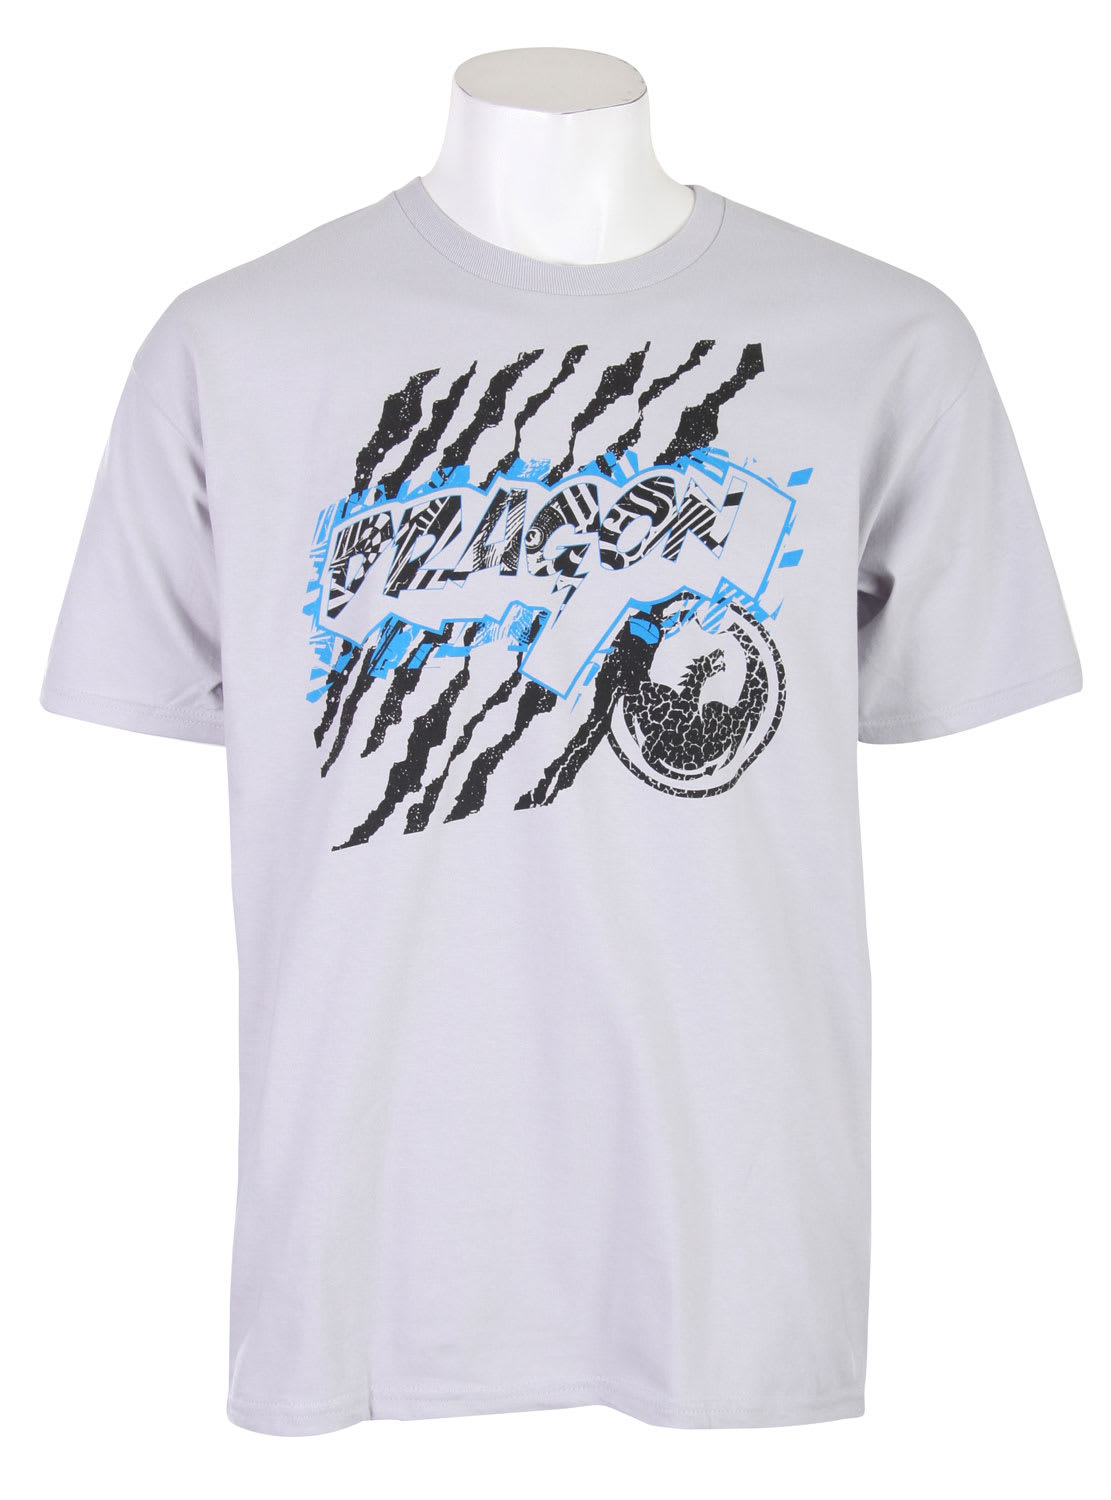 Shop for Dragon Throwback T-Shirt Silver - Men's